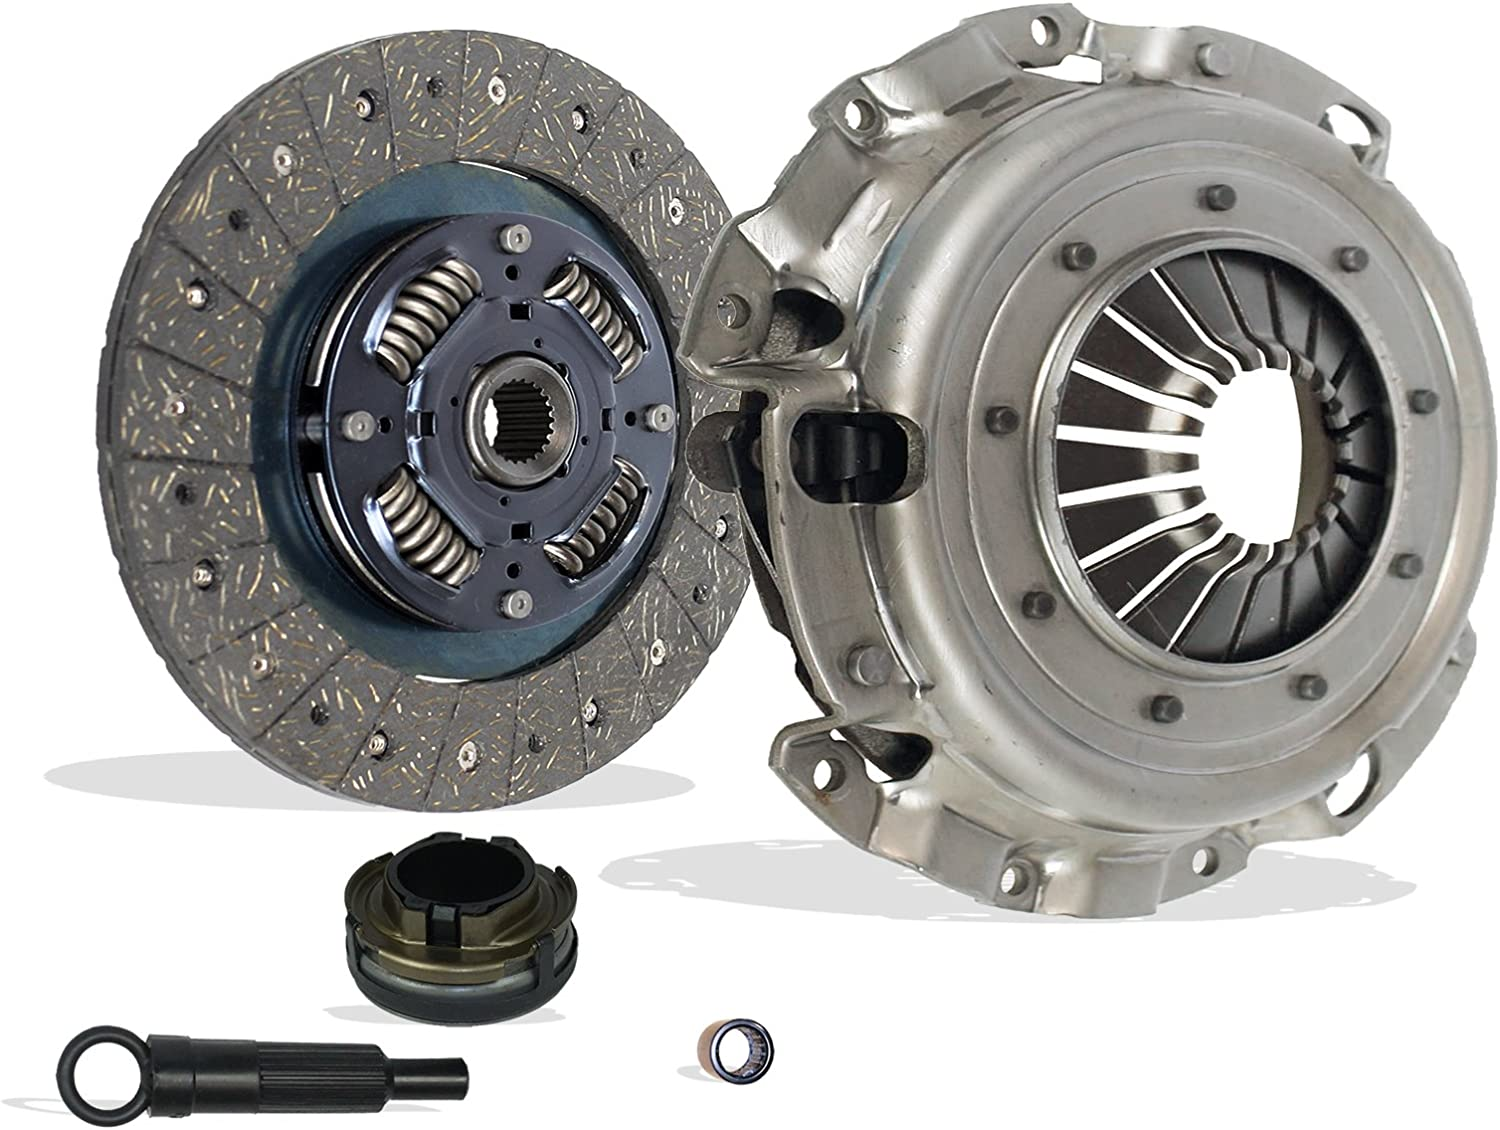 Clutch Kit Compatible With 3 Los Angeles Mall 5 safety Gs-Sky Grand Gx Mi S Touring Gt i